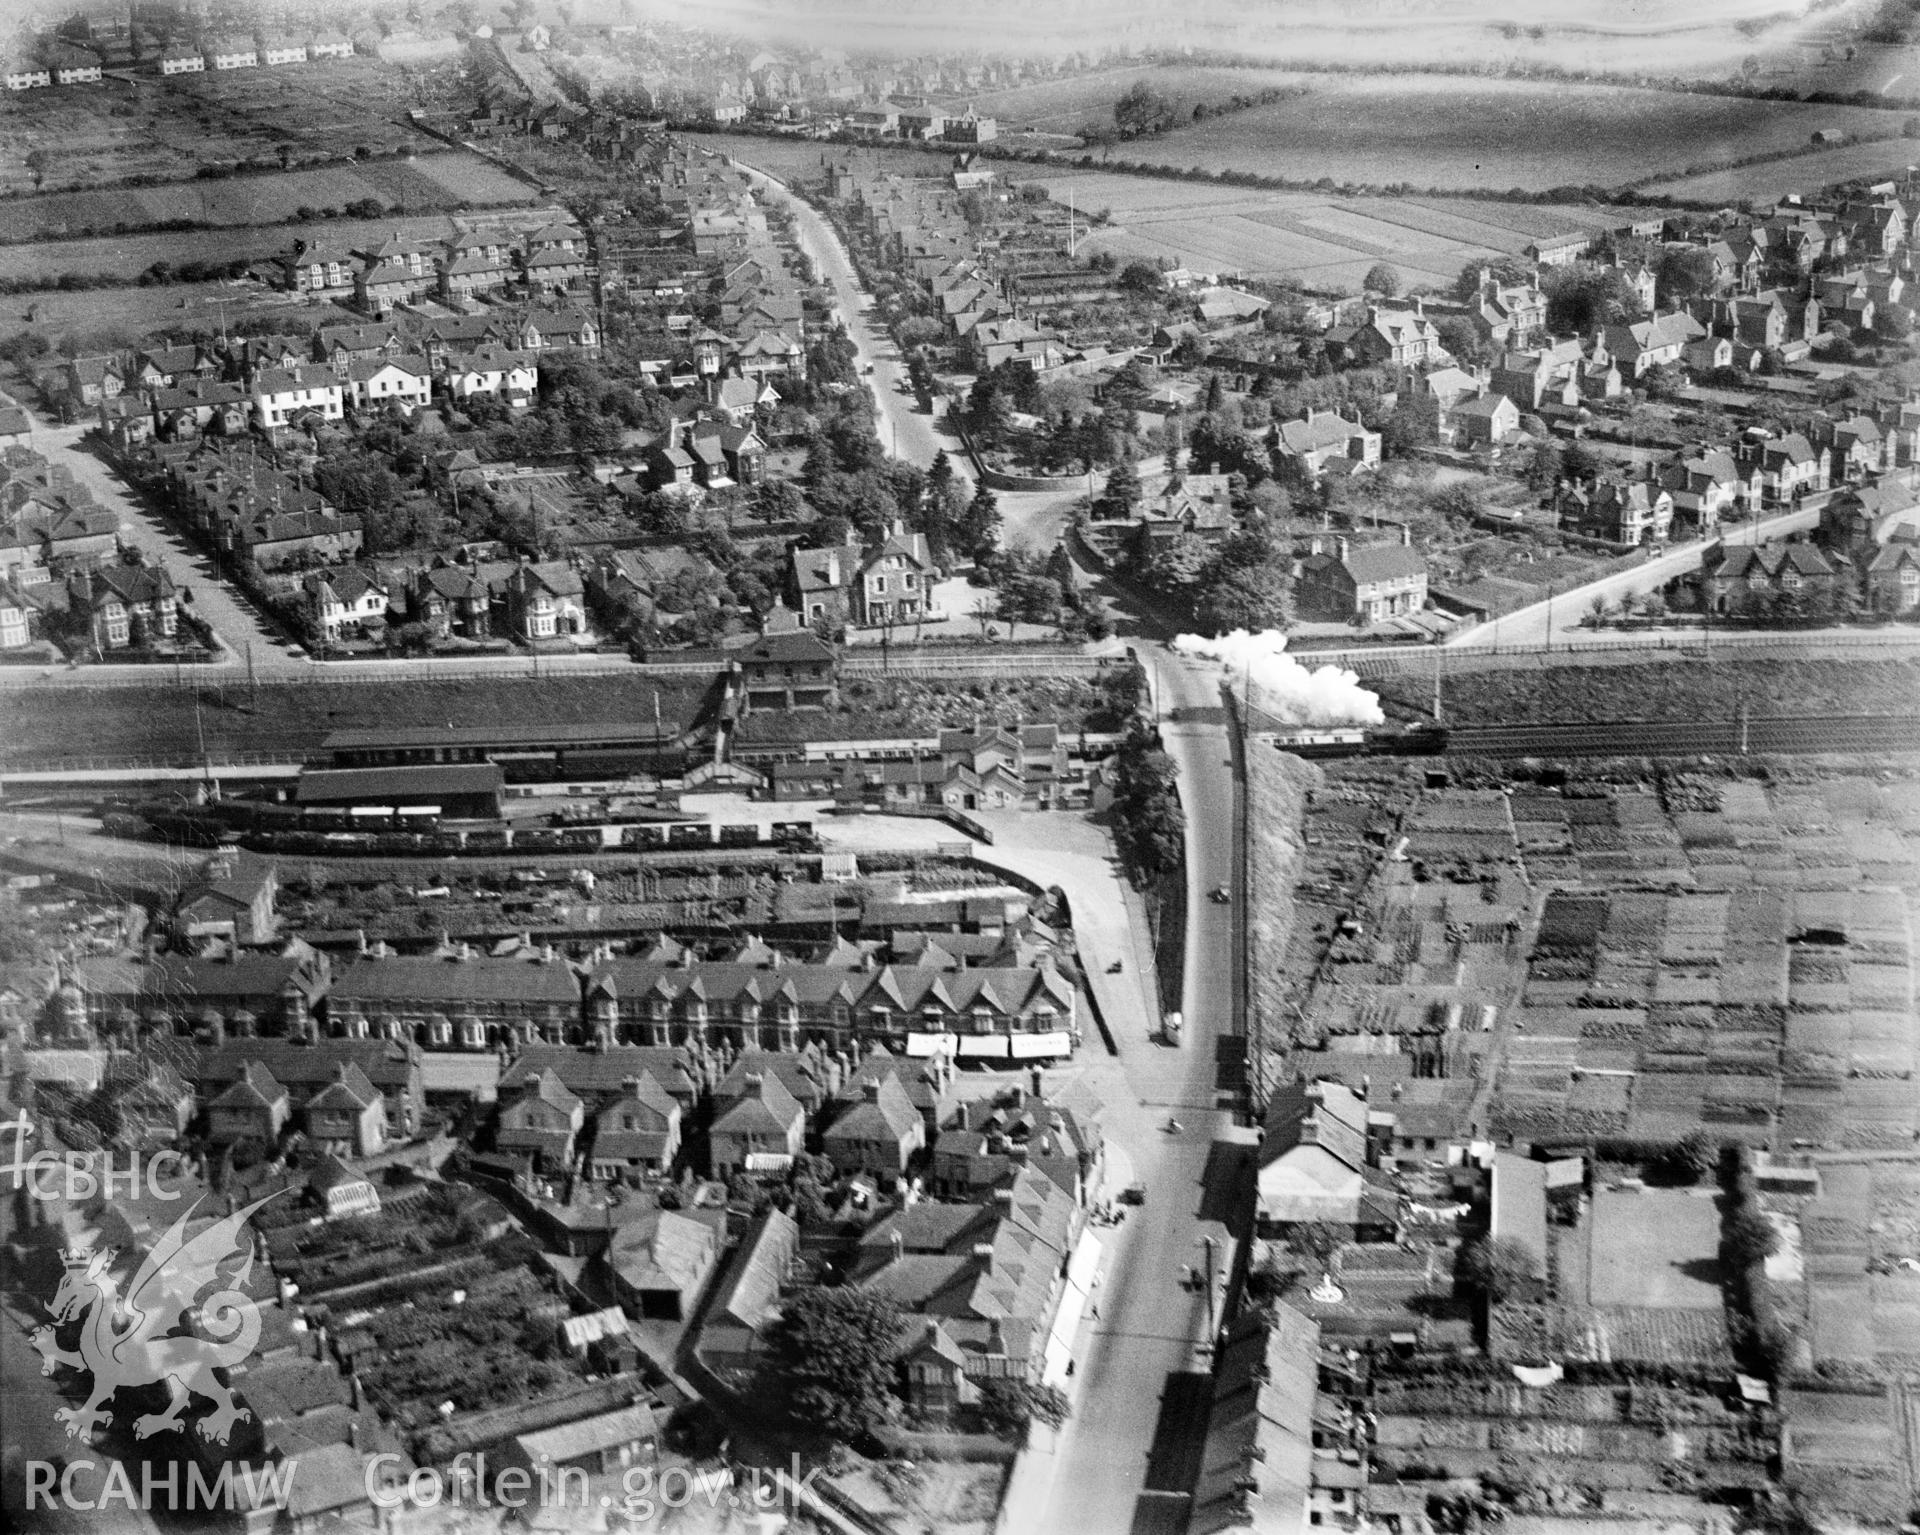 General view of Llandaff, with train, oblique aerial view. 5?x4? black and white glass plate negative.